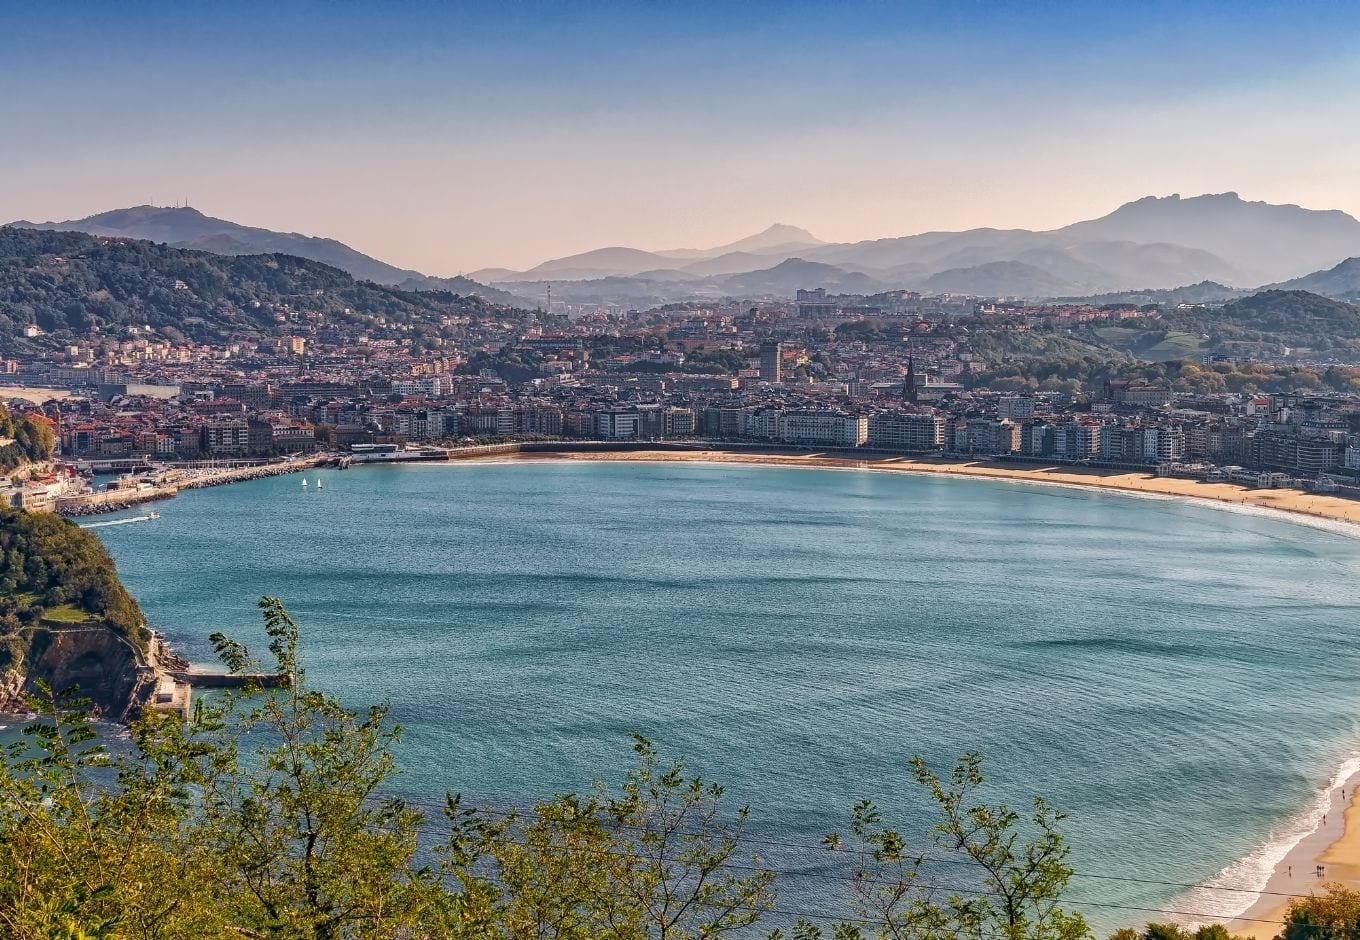 View of the ocean surrounded by buildings and mountains in San Sebastian, Spain.